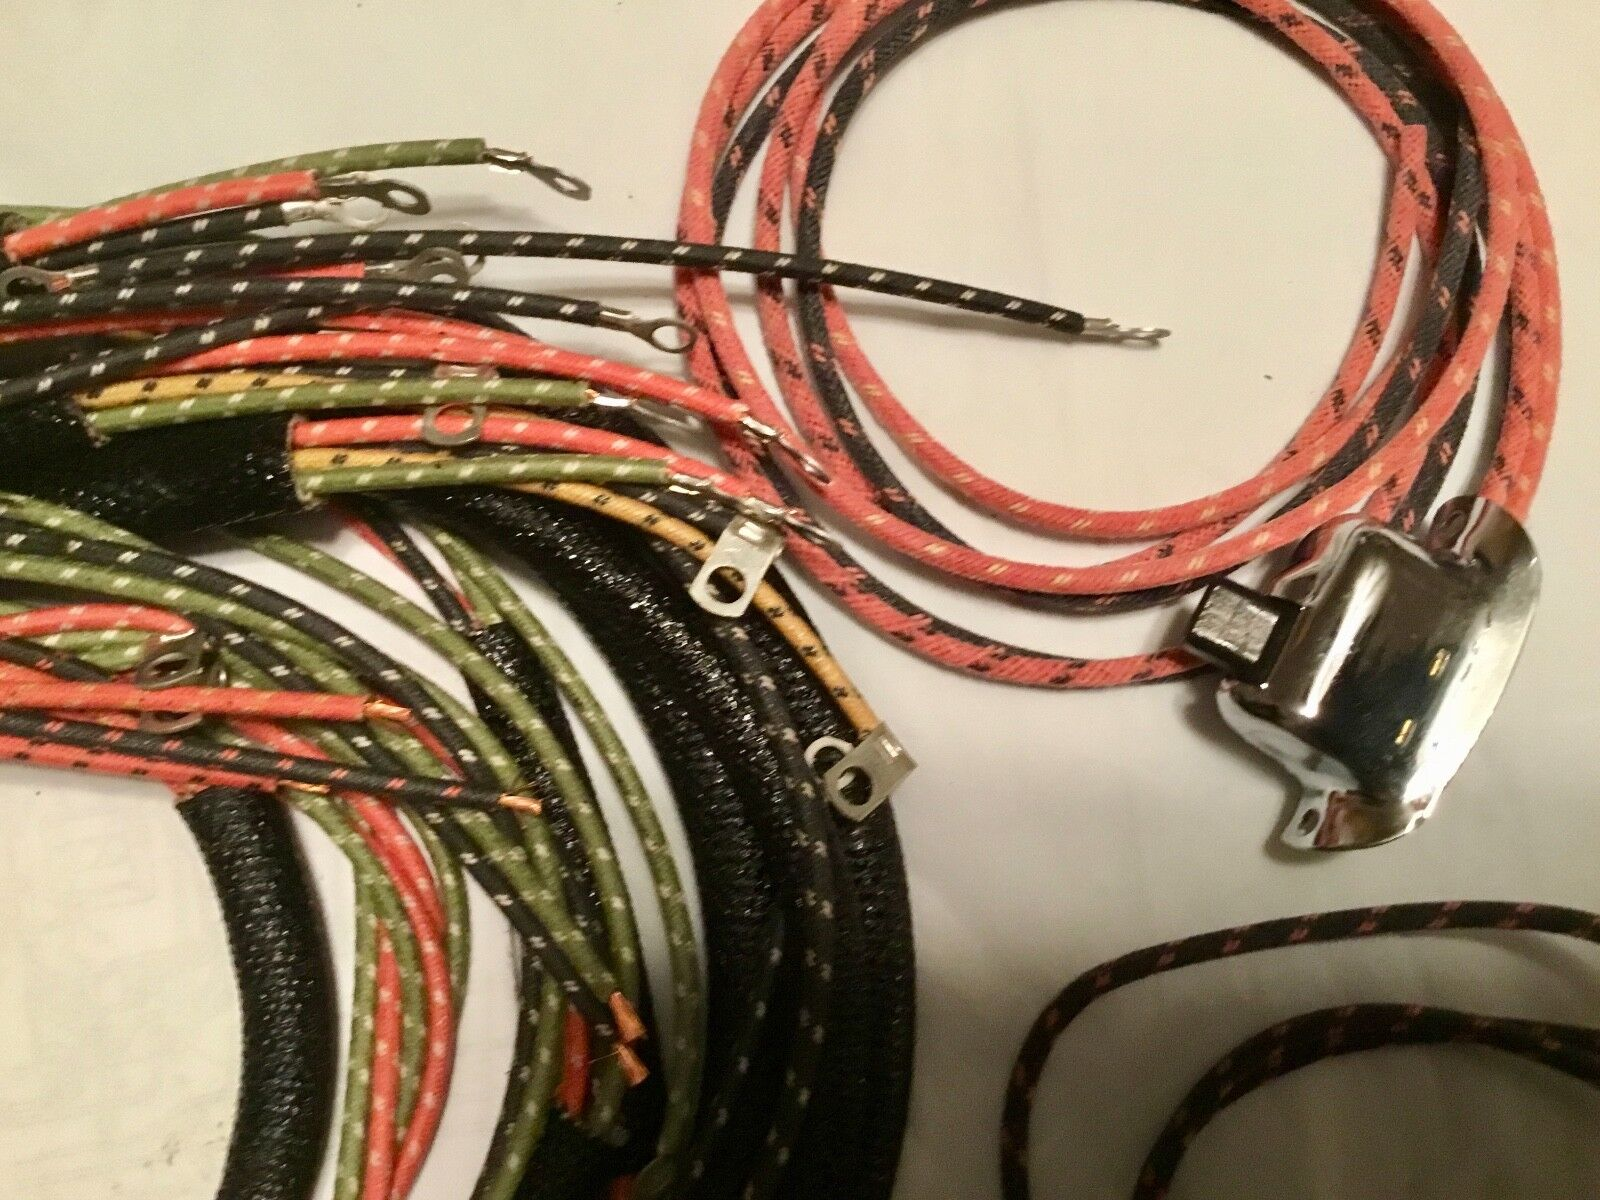 Harley 70321-48 Complete Panhead 1949-57 Wiring Harness W/ Wired Switches  USA